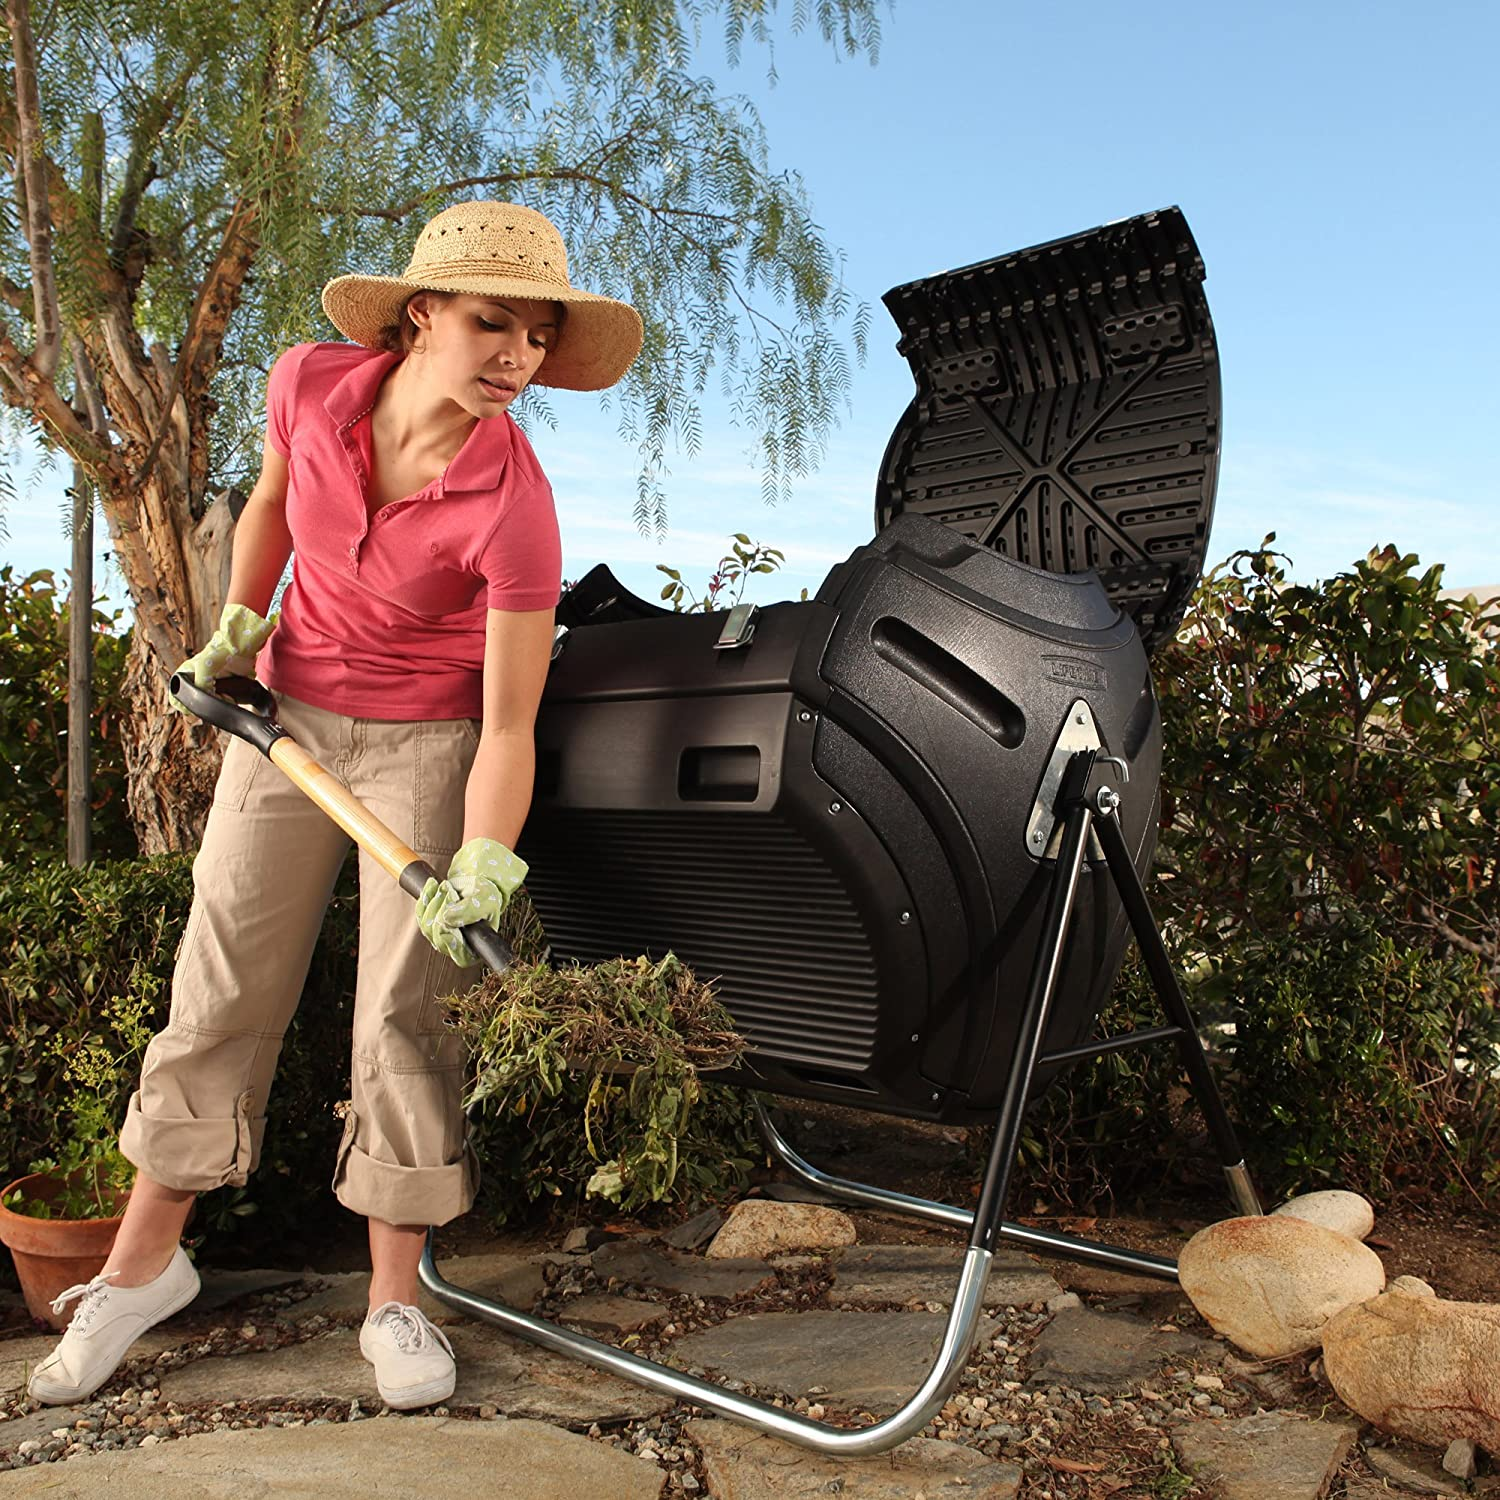 Lifetime 60058 Compost Tumbler is made out of plastic materials